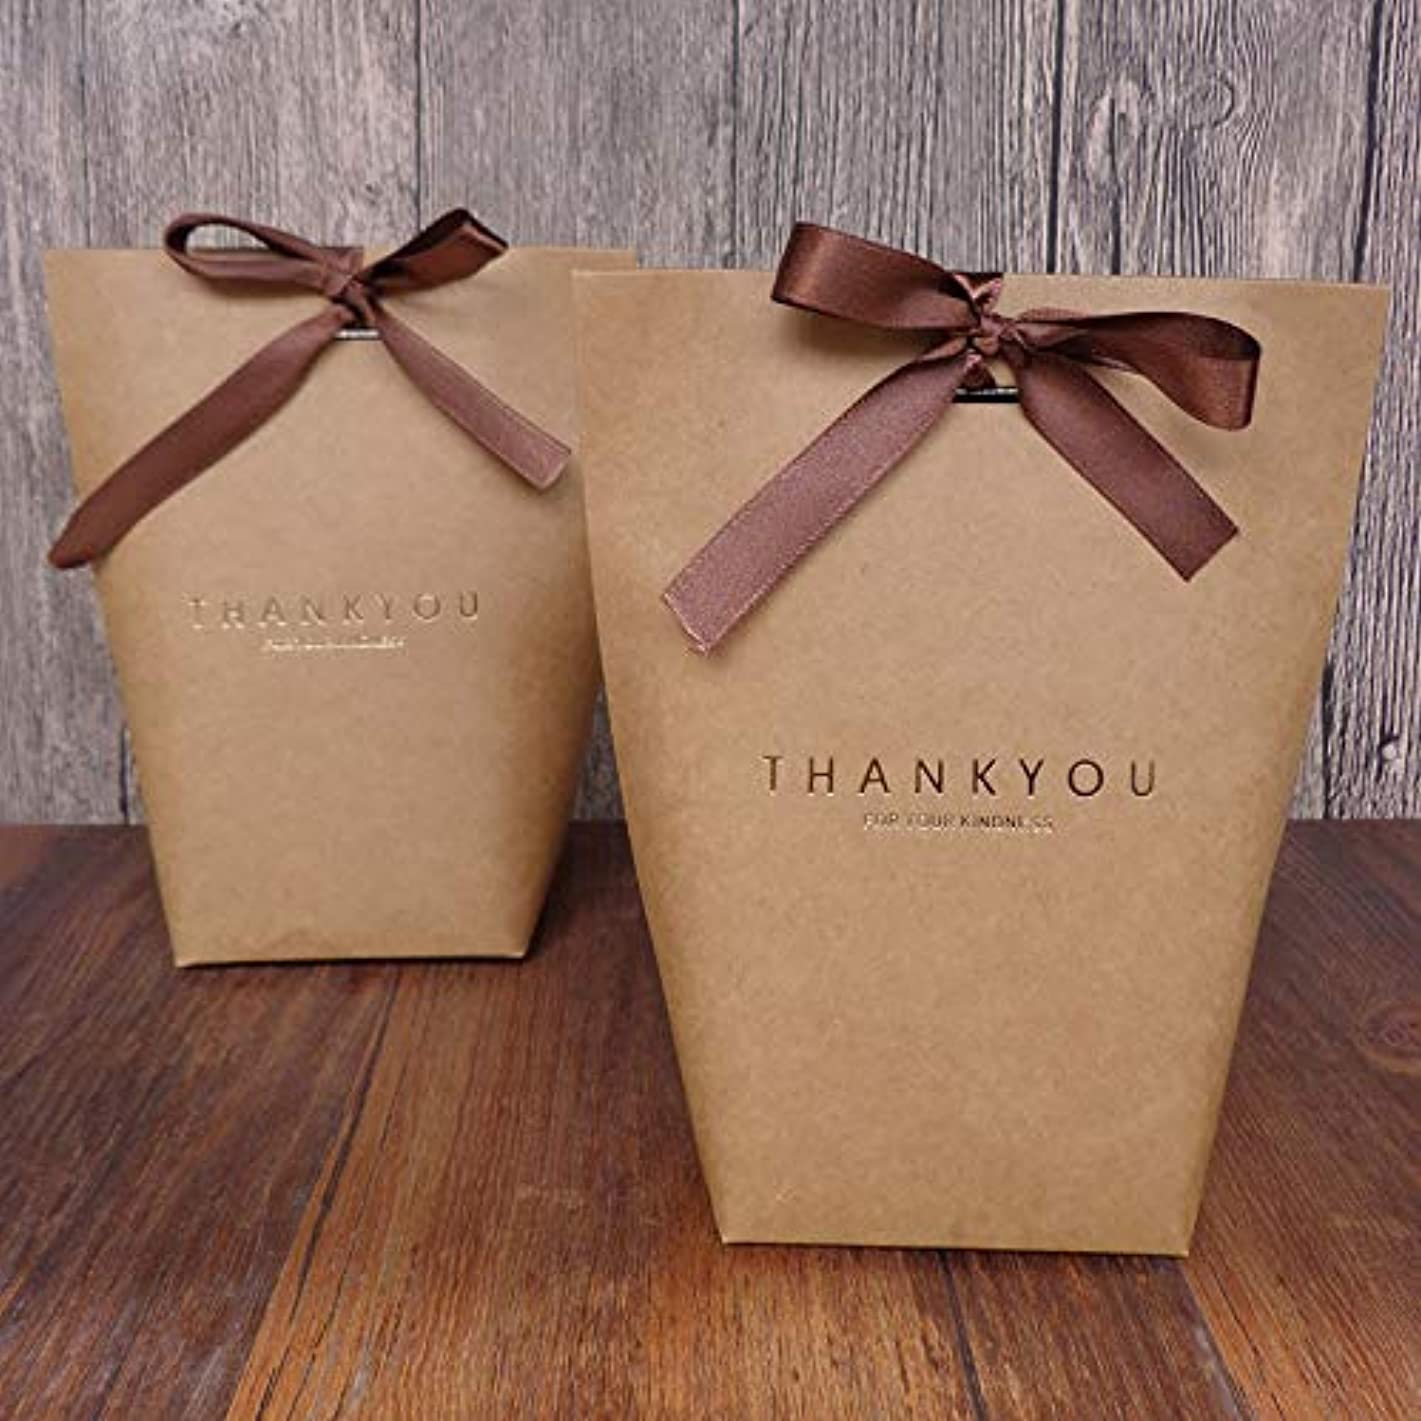 SHHS 9 PCS Thank You Gift Wrap Boxes Packing Bags(9 Brown), Minimalist Gift Boxes Easter, Decorative Presents Box Bundle for Packing Candy/Tie